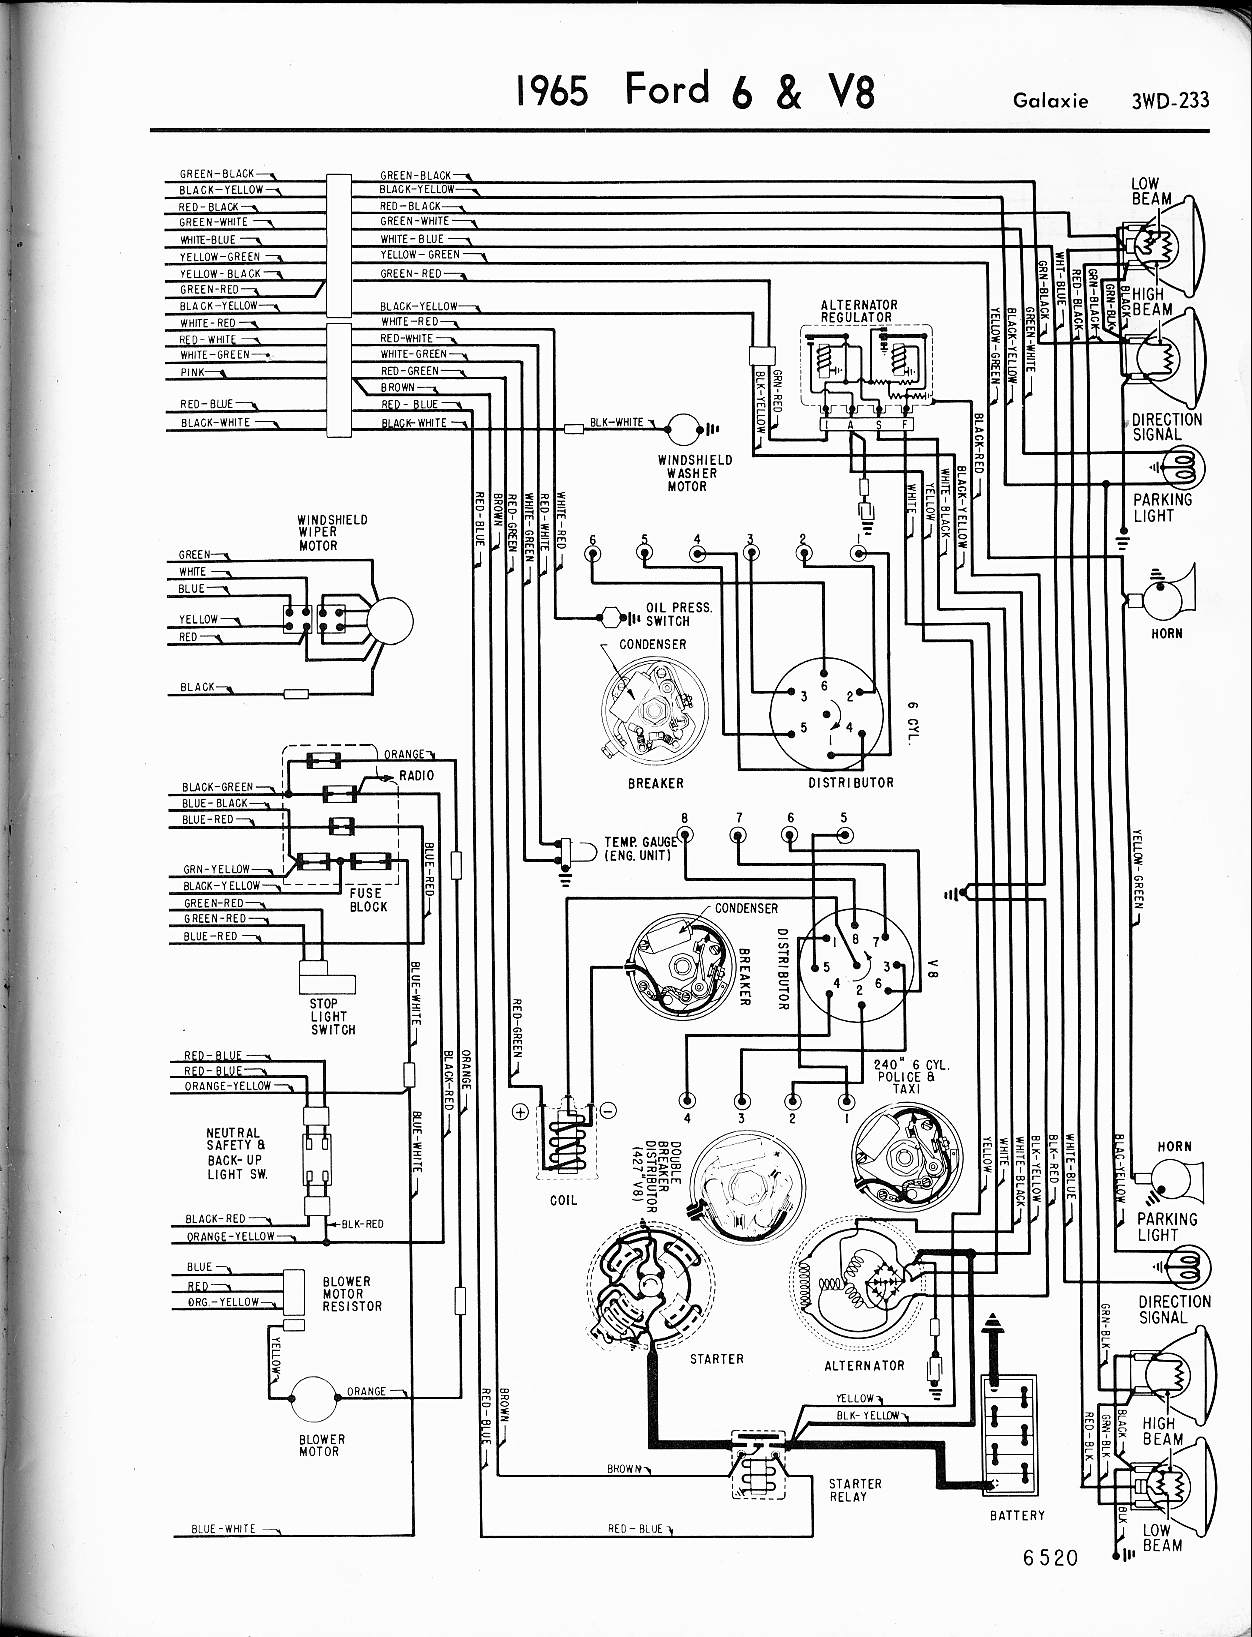 ba falcon ute stereo wiring diagram inner brain au great installation of 65 ford blogs rh 3 2 4 restaurant freinsheimer hof de 64 fg